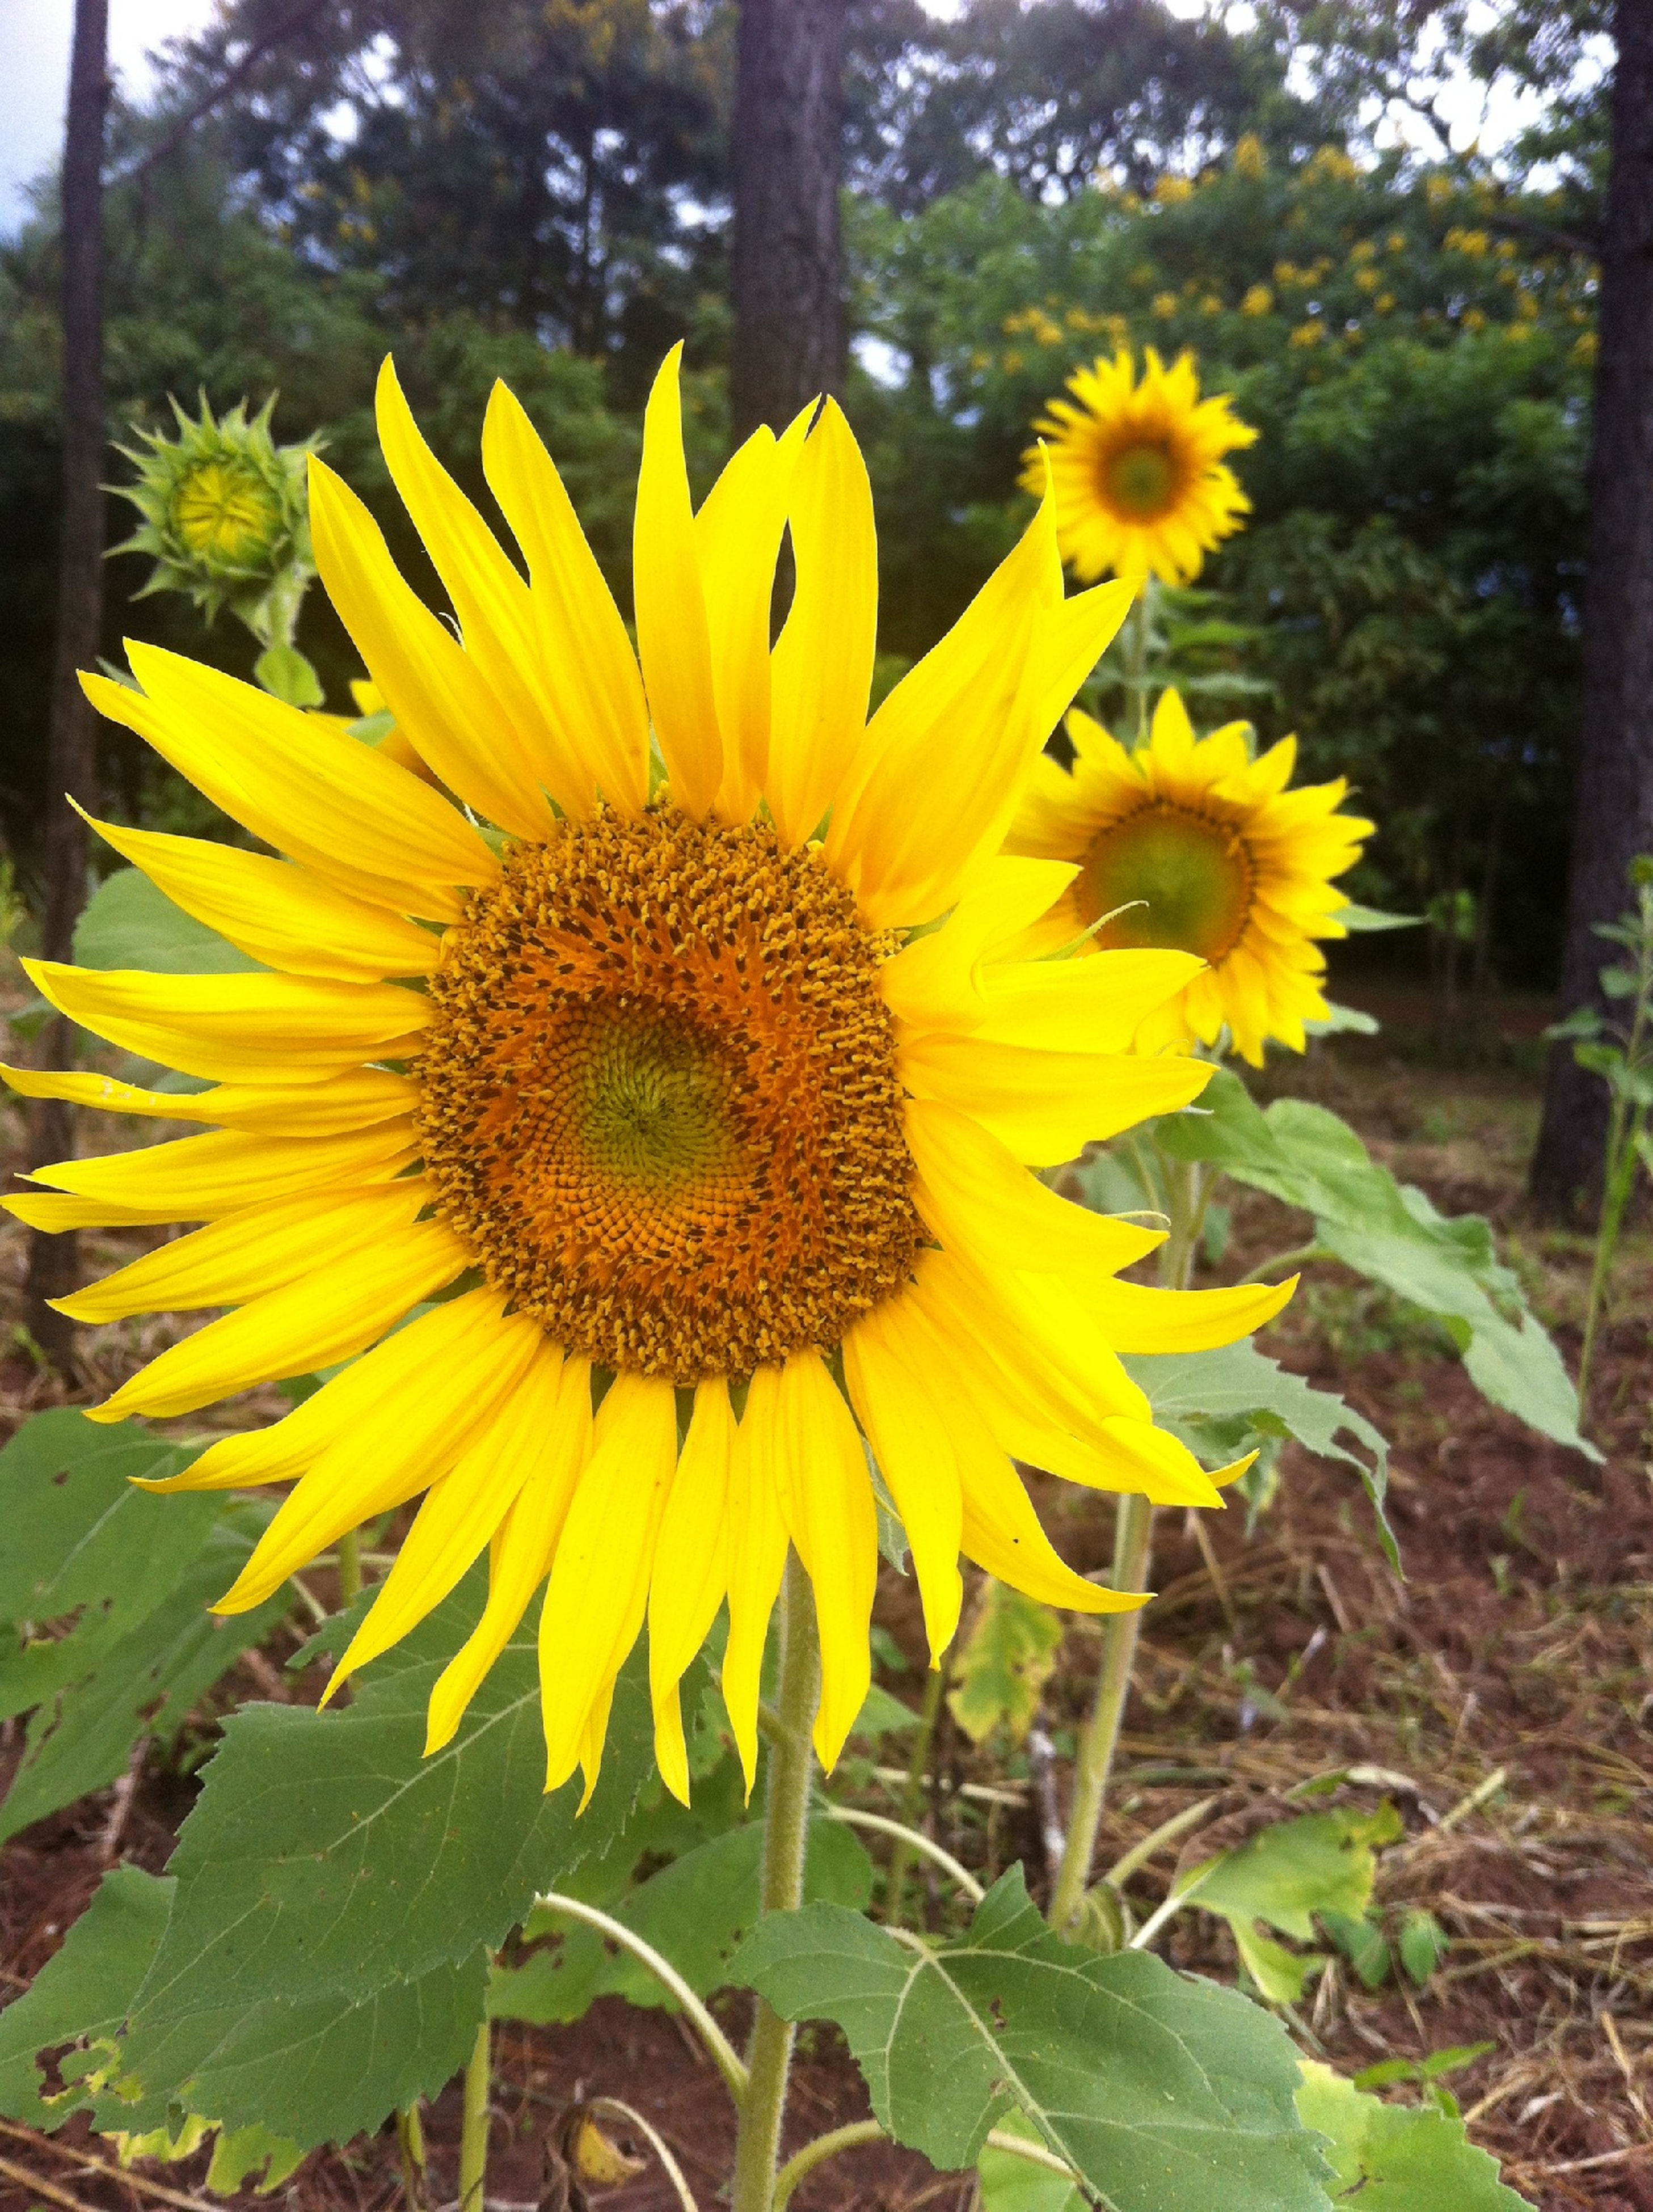 flower, yellow, freshness, petal, fragility, flower head, growth, sunflower, beauty in nature, blooming, plant, pollen, focus on foreground, close-up, nature, in bloom, leaf, single flower, field, day